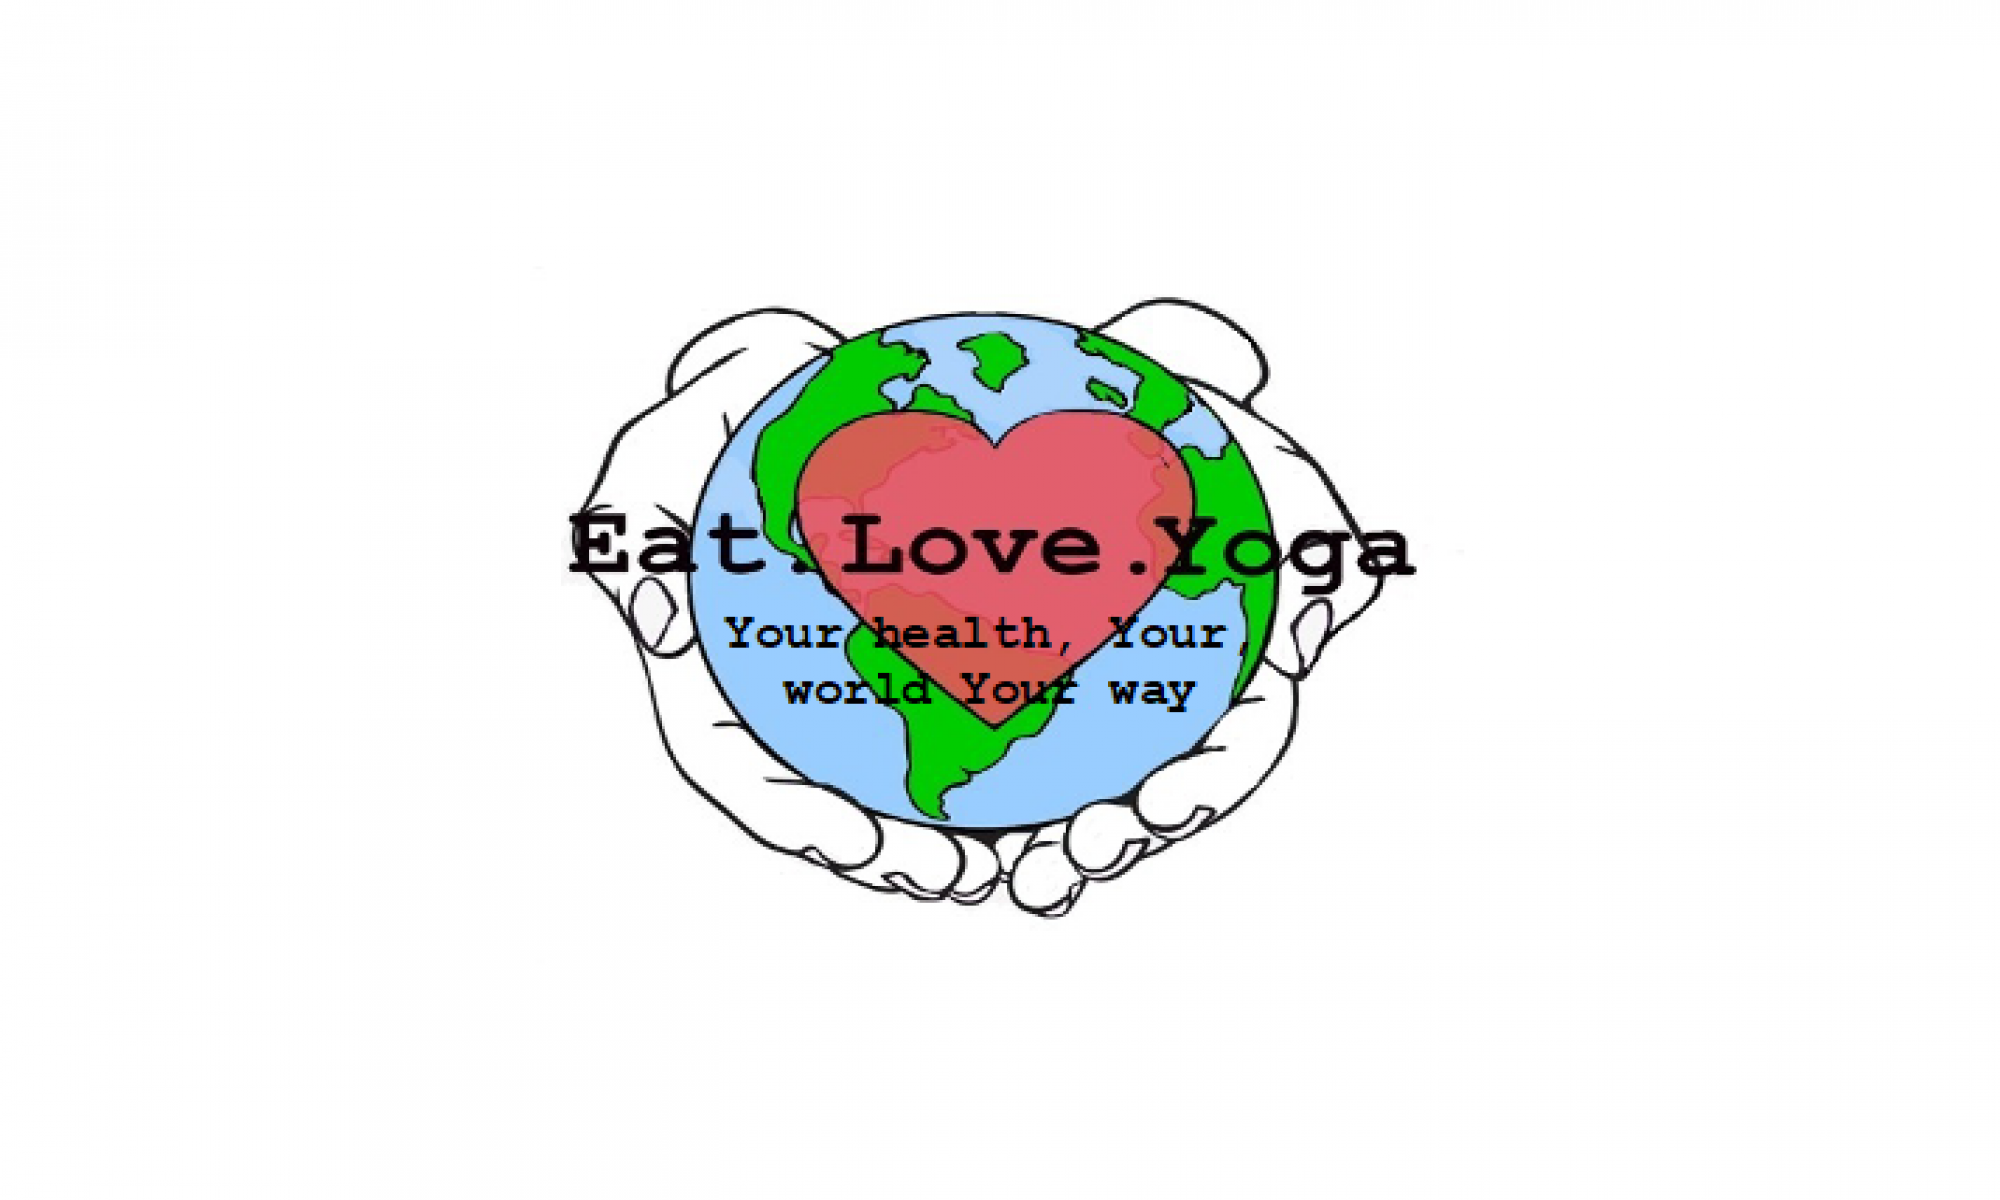 Eat.Love.Yoga